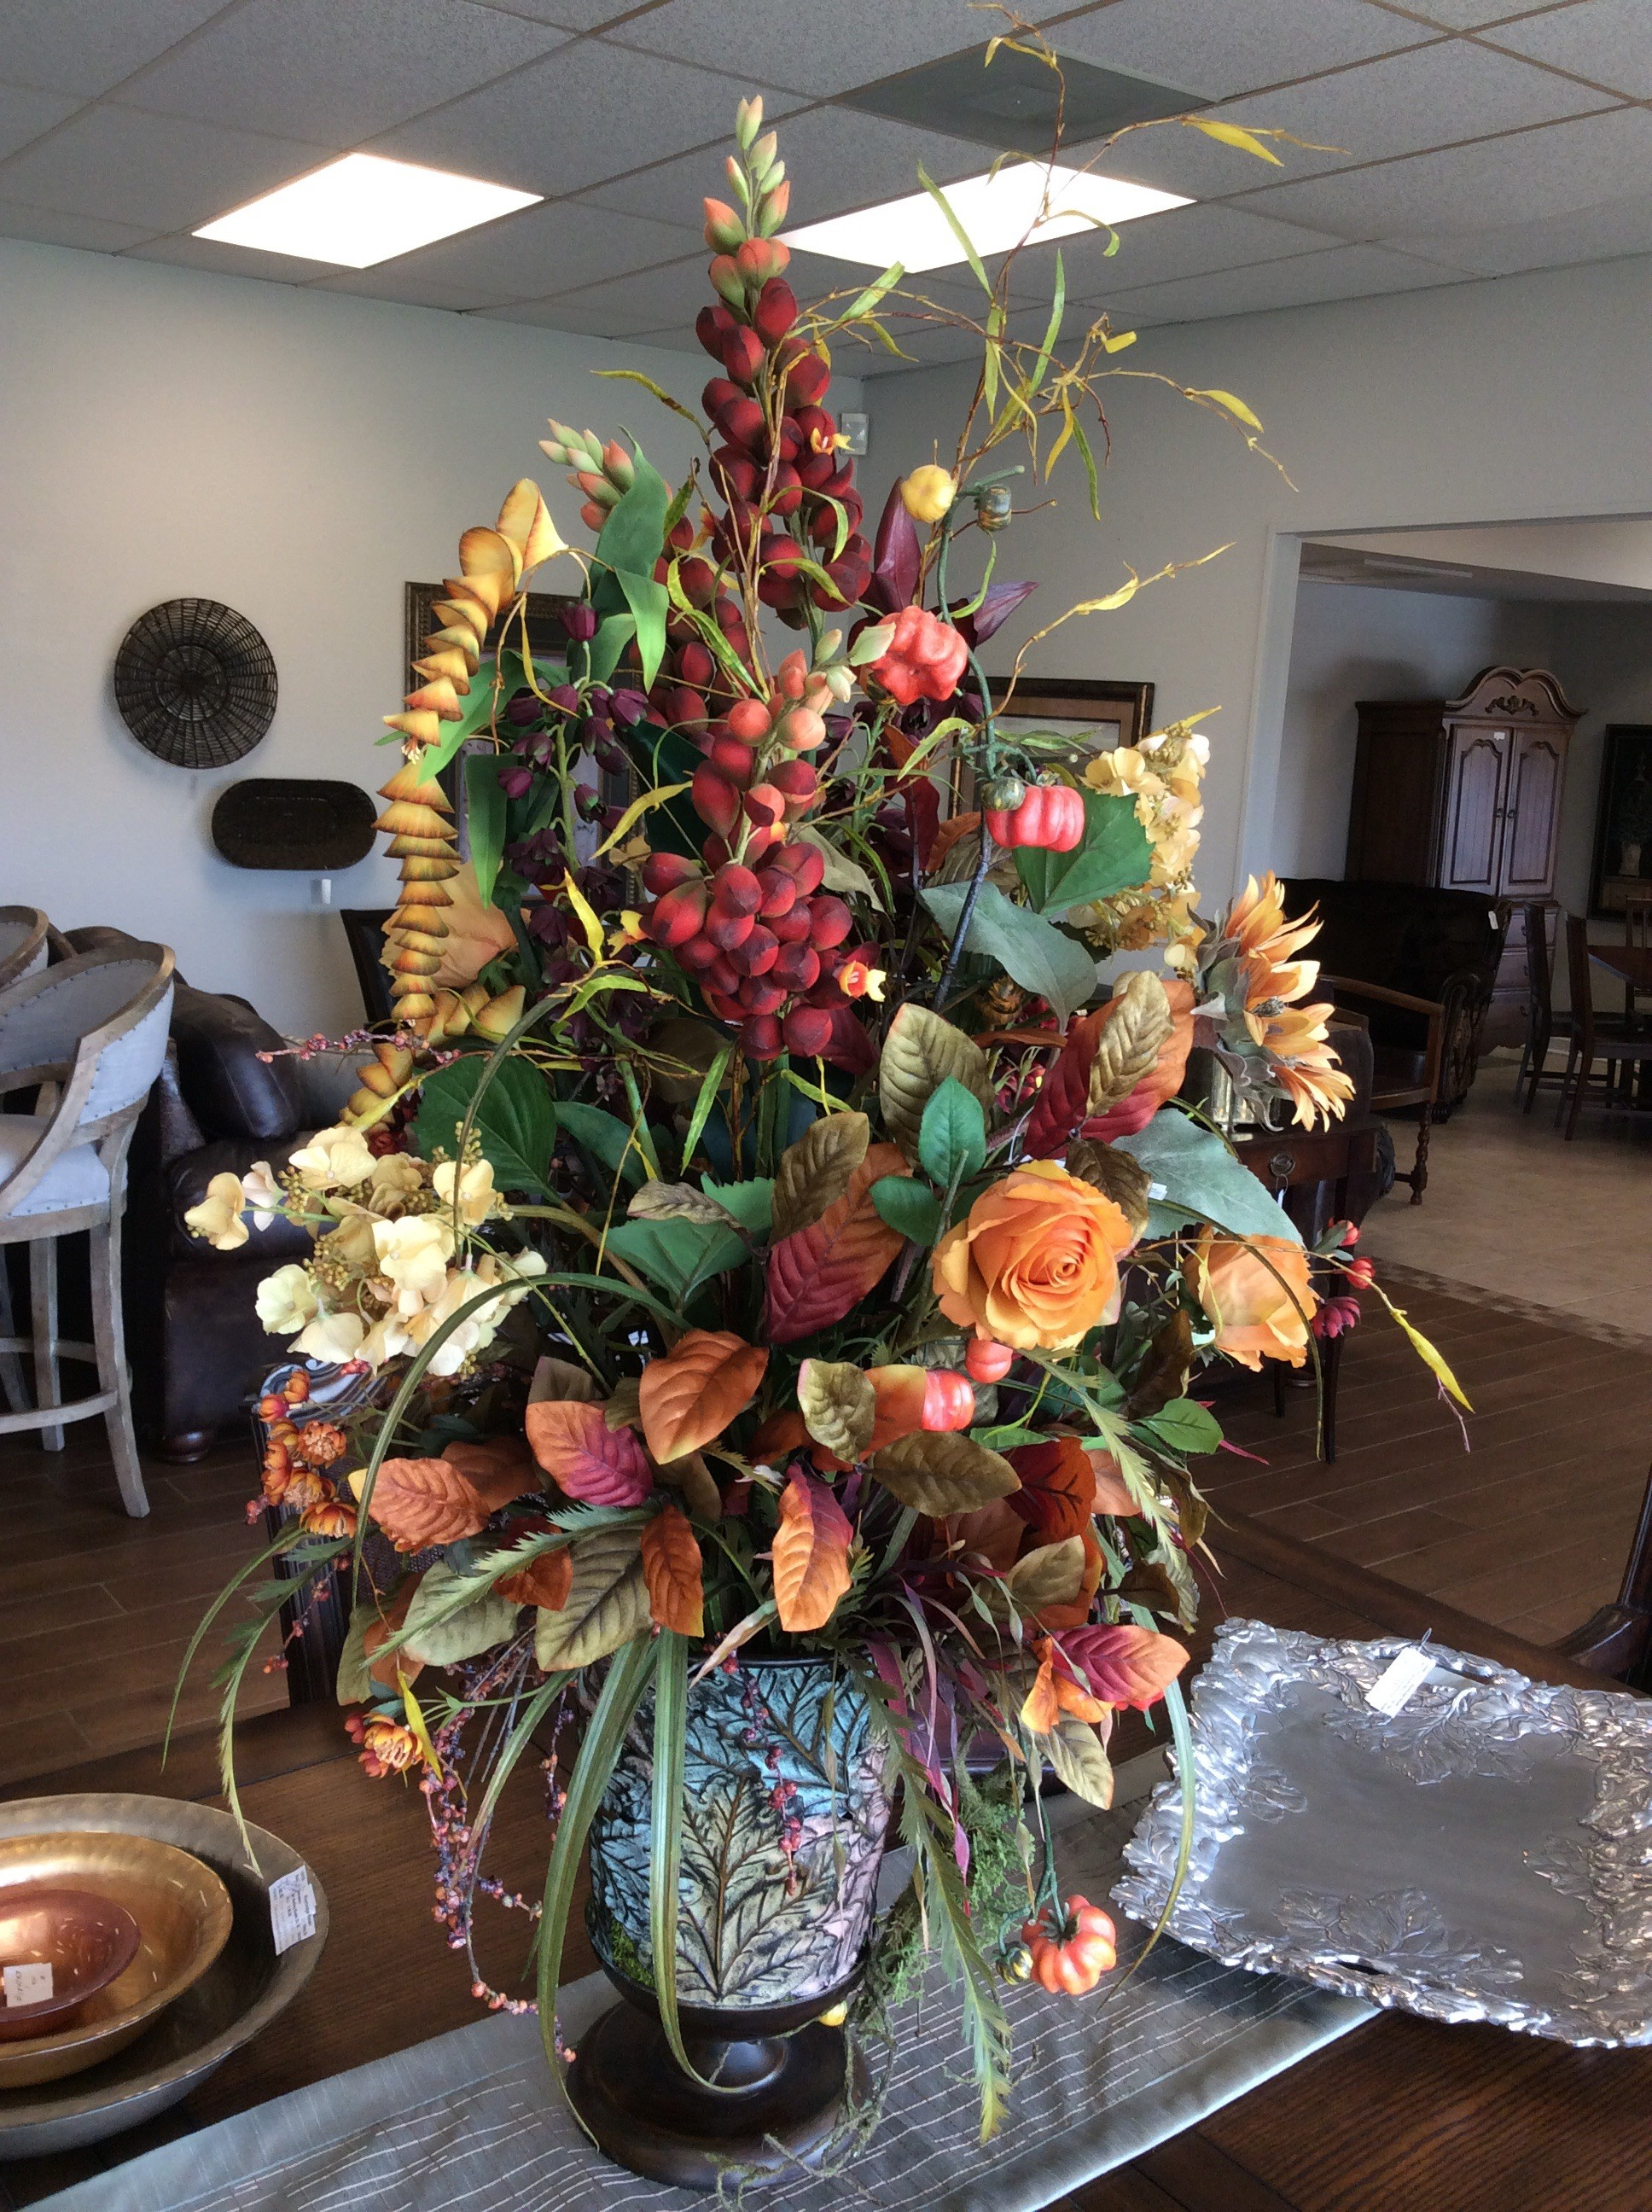 "This fall floral belongs on your Harvest/Thanksgiving table! It is large, stands 48"" high and 30"" across. Replete with all the colors of autumn, it features pumpkins, roses, sunflowers, berries and vines, oh my! Sitting in a lovely metal planter. it's perfect!"